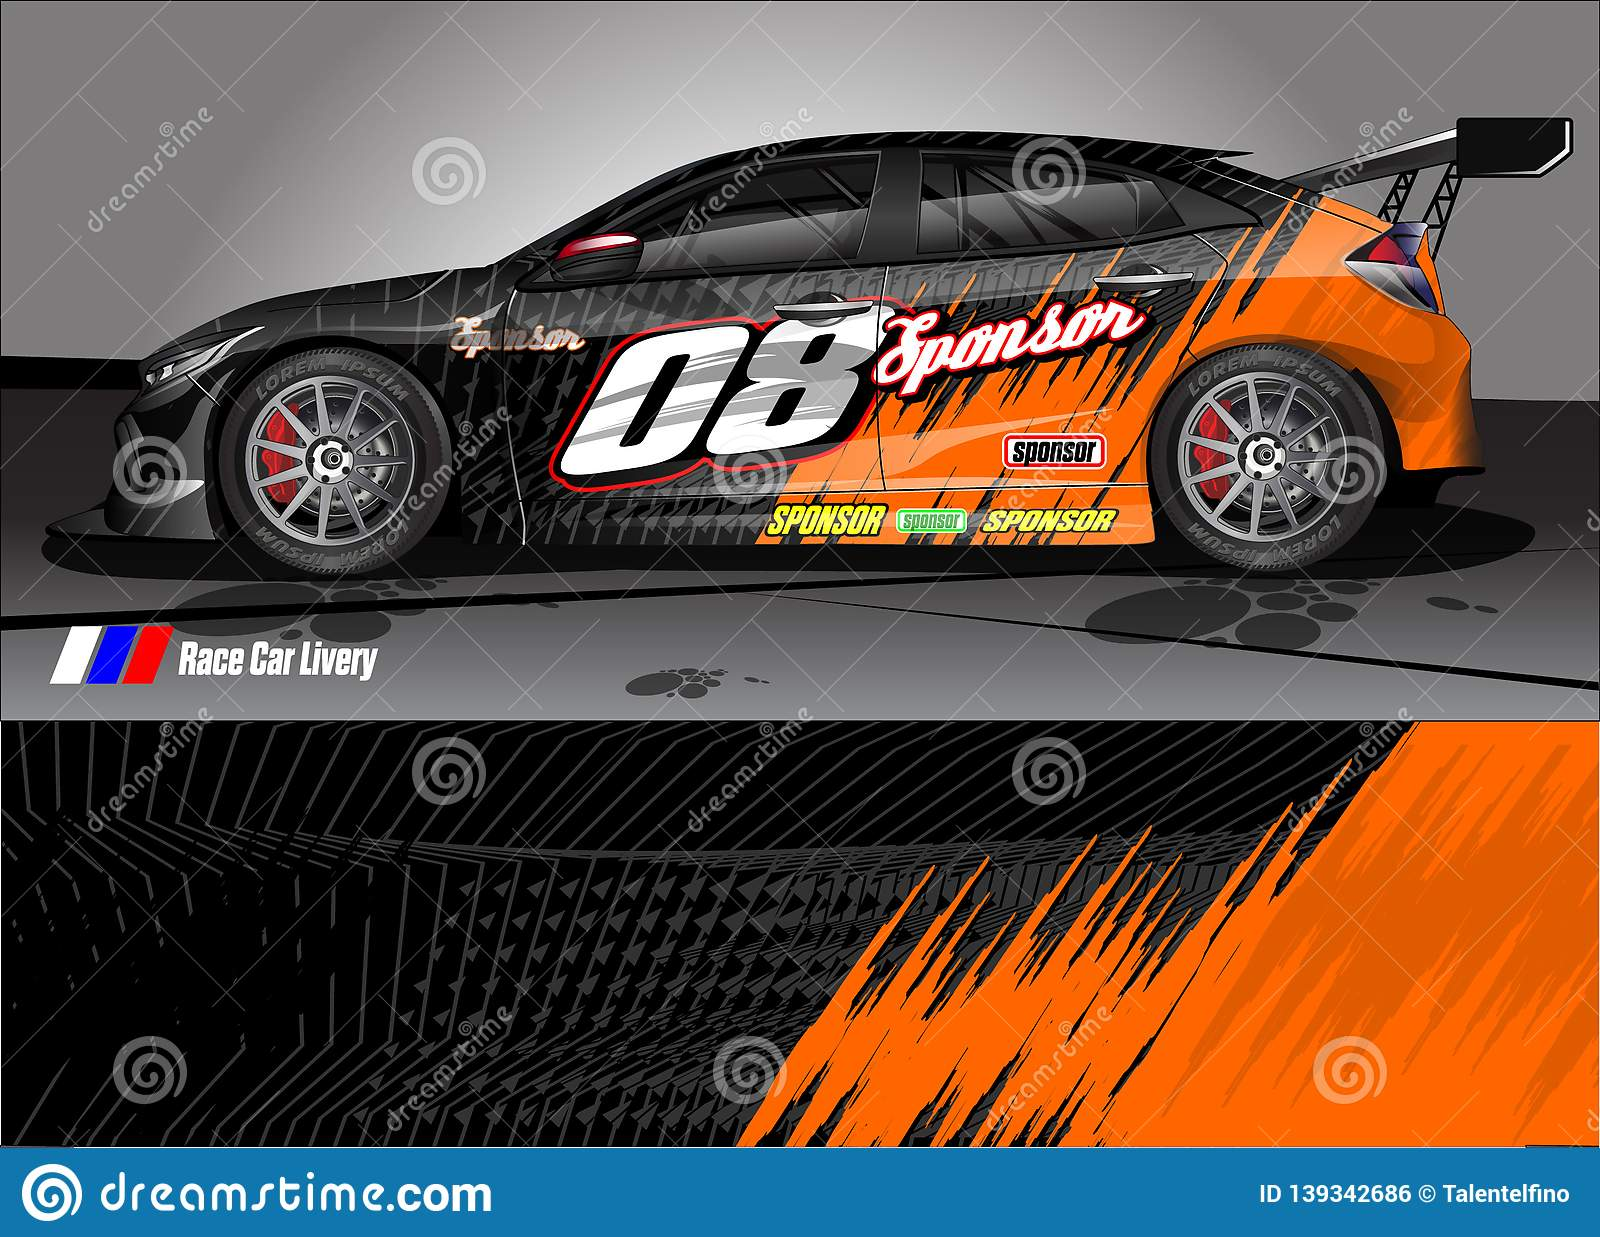 Race car livery graphic abstract grunge background design for vehicle vinyl wrap and car branding